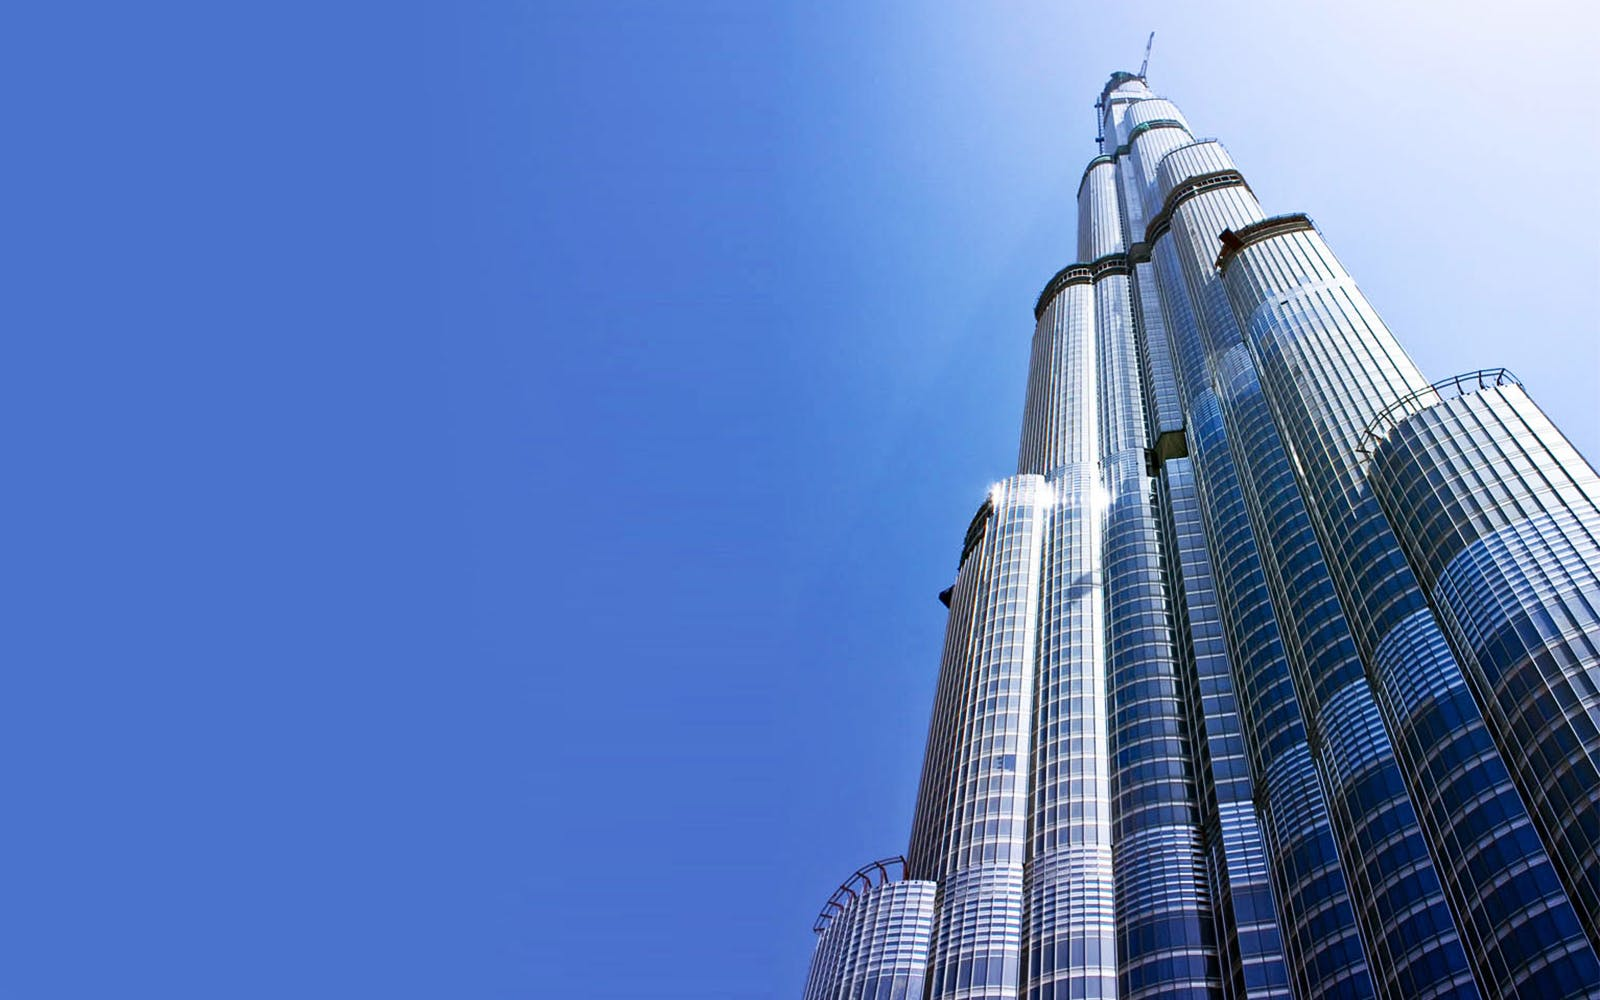 Skip the Line - Burj Khalifa